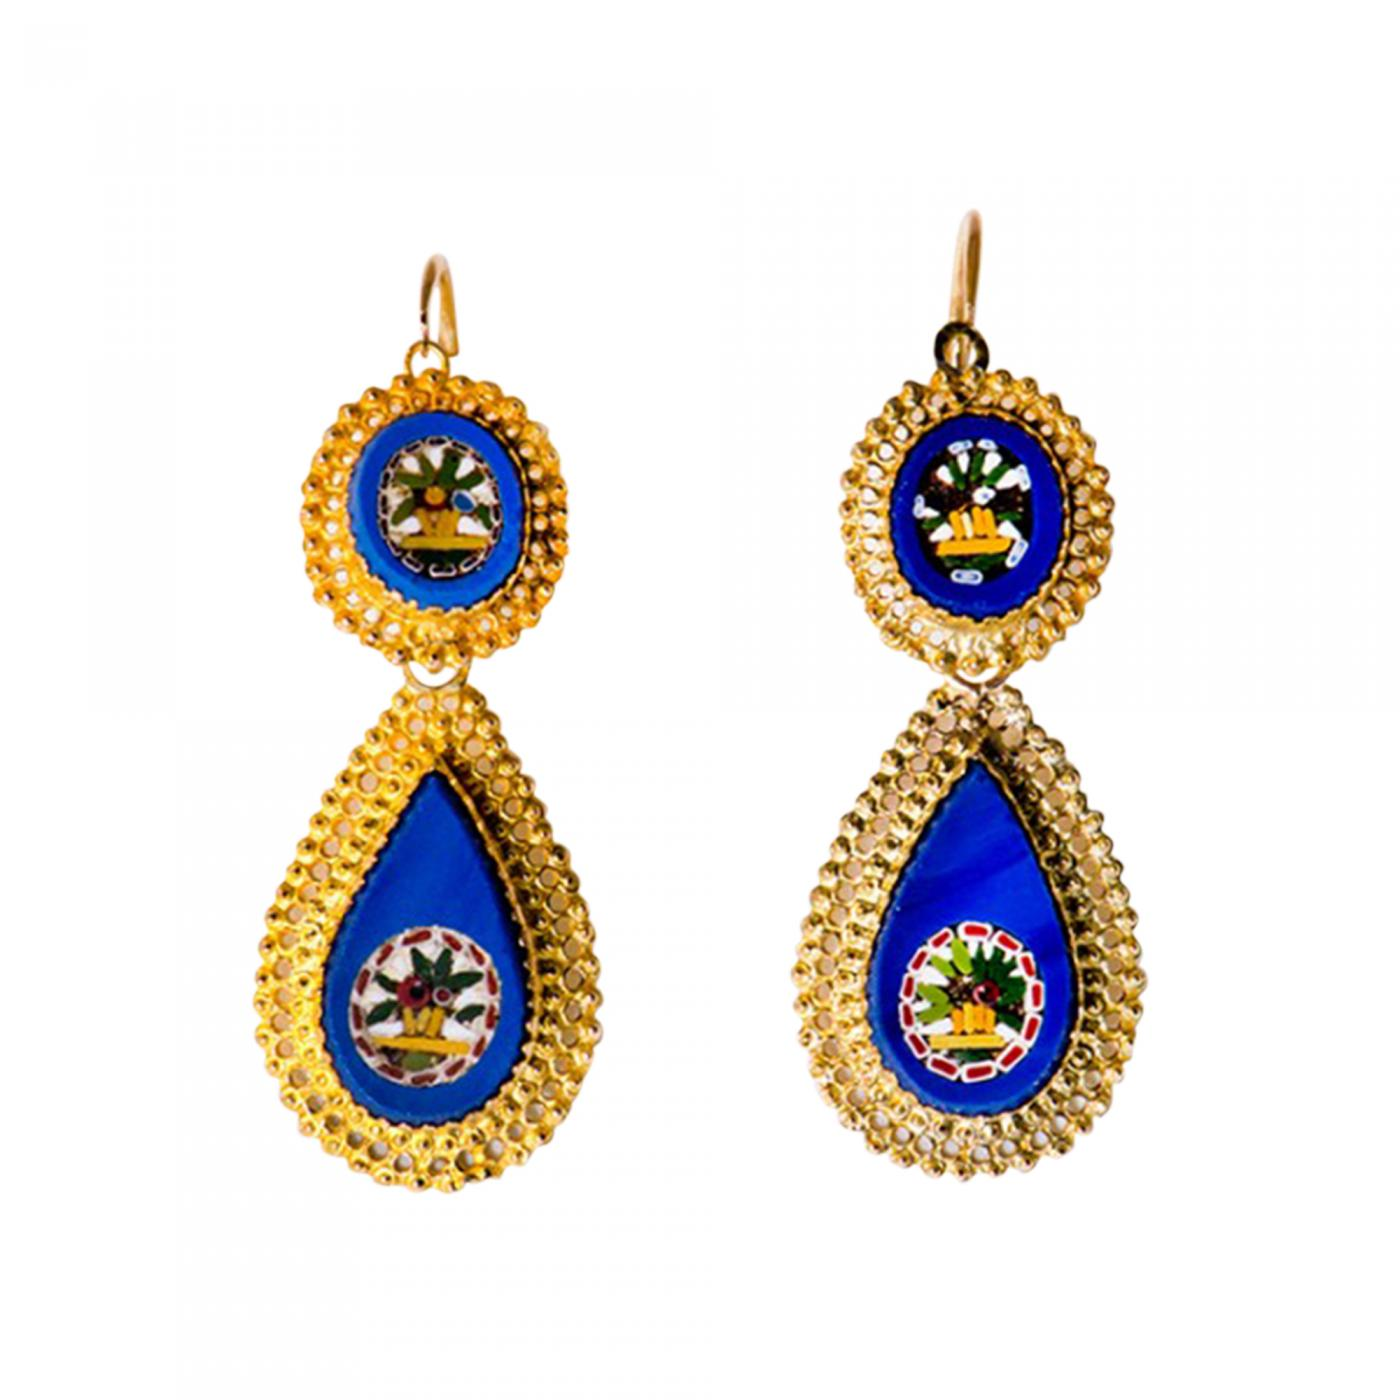 top jewellers earrings haute gold rock roberto italian diamonds coin by baselworld set at jewellery trends jewels